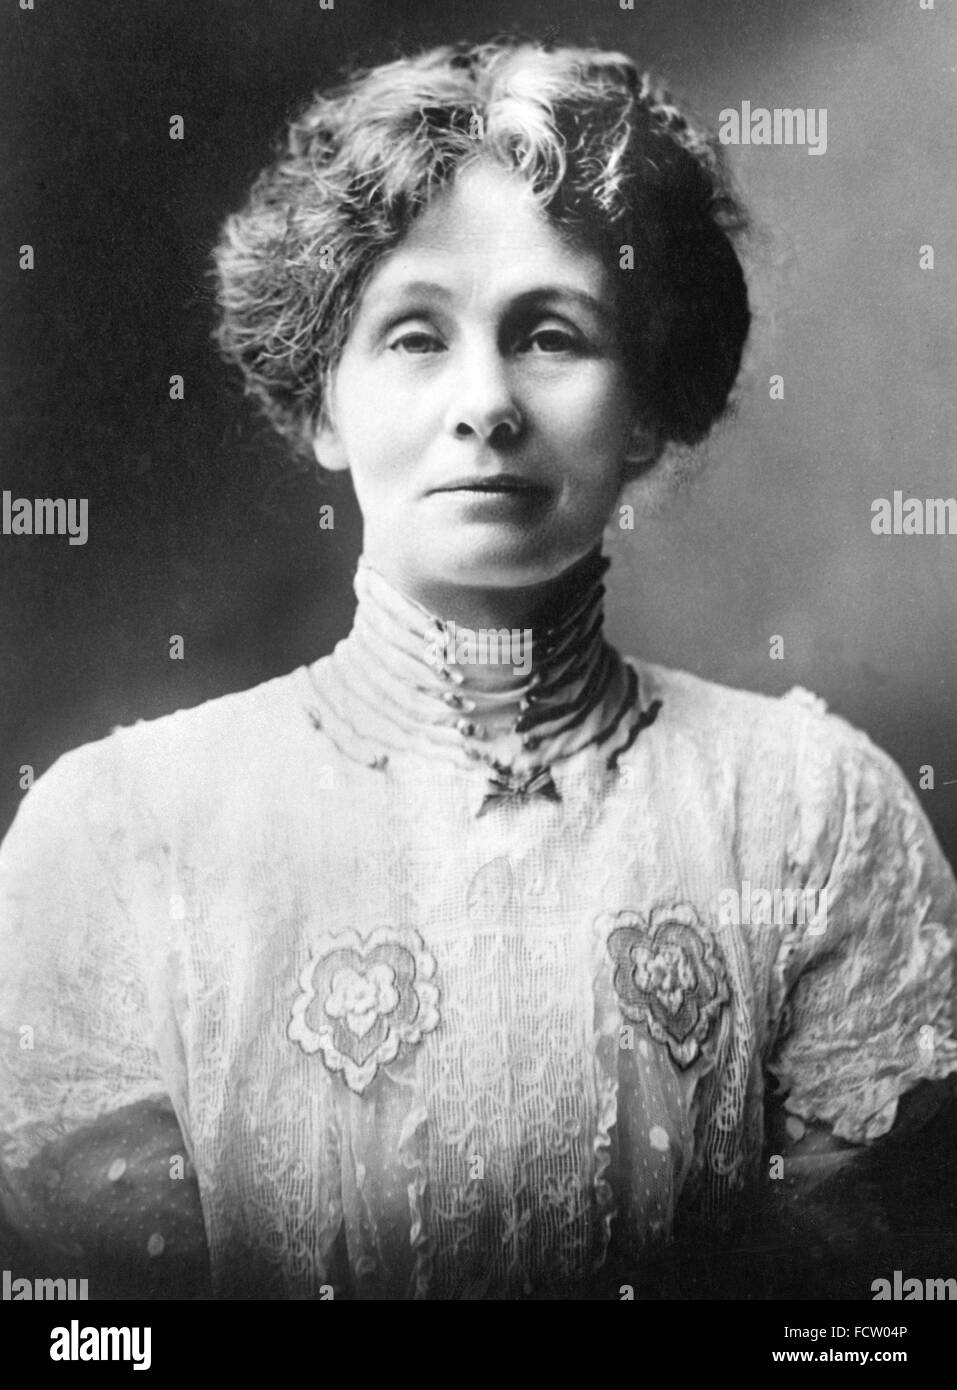 EMMELINE PANKHURST (1858-1928) womens rights campaigner about 1914 - Stock Image